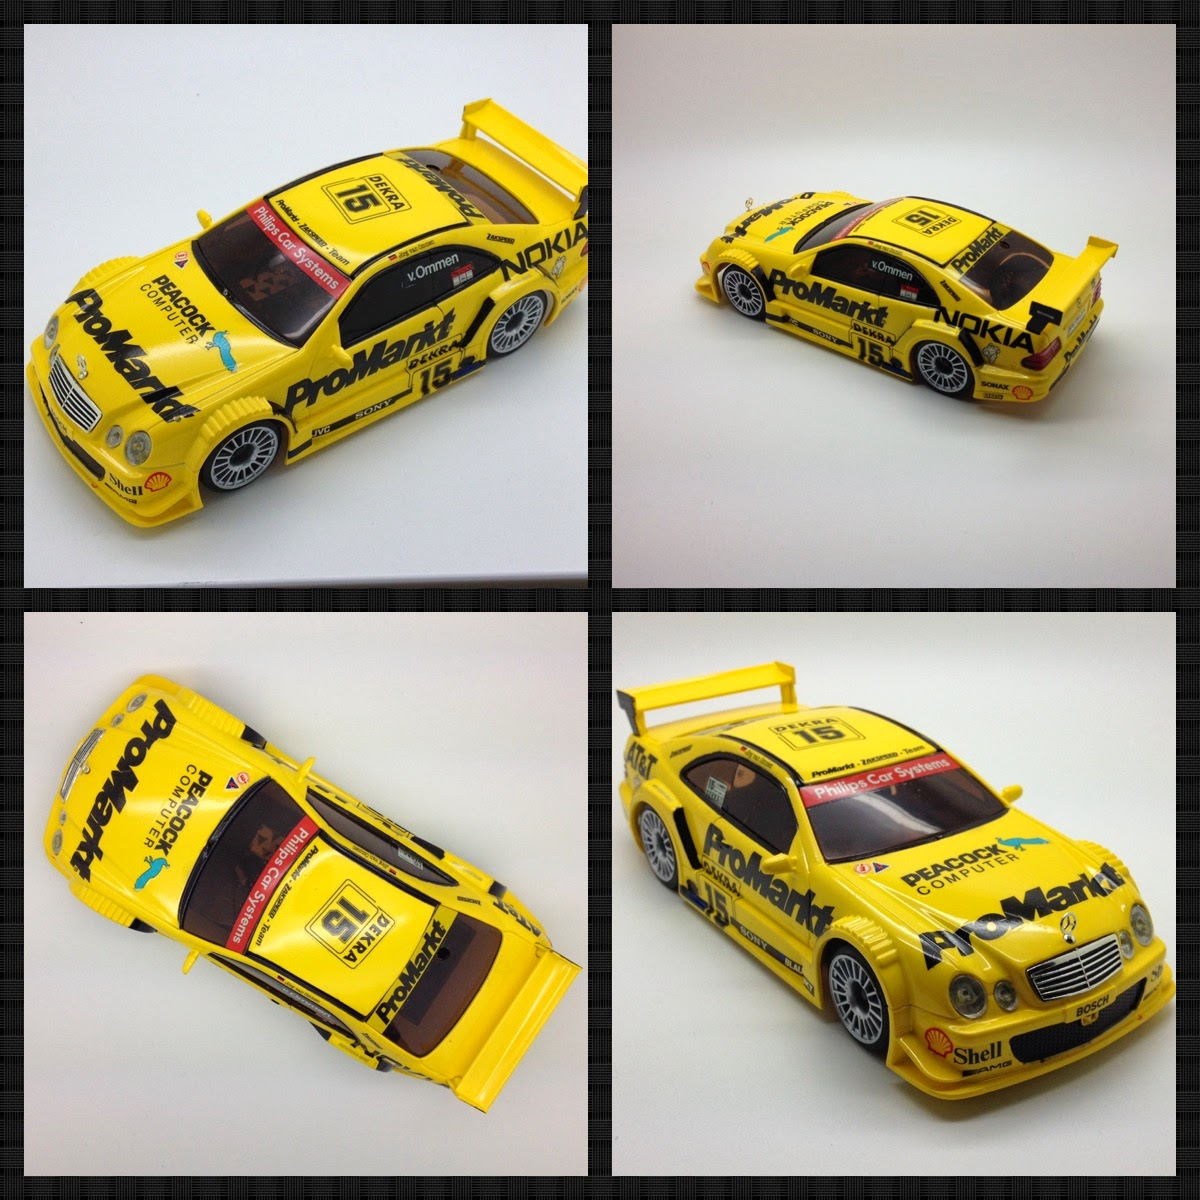 Kyoshosan My Custom Painted Mini Z Amg Mercedes Dtm Promarkt Pn Racing V2 Rc Printed Circuit Board Assembly Mr03 Setting